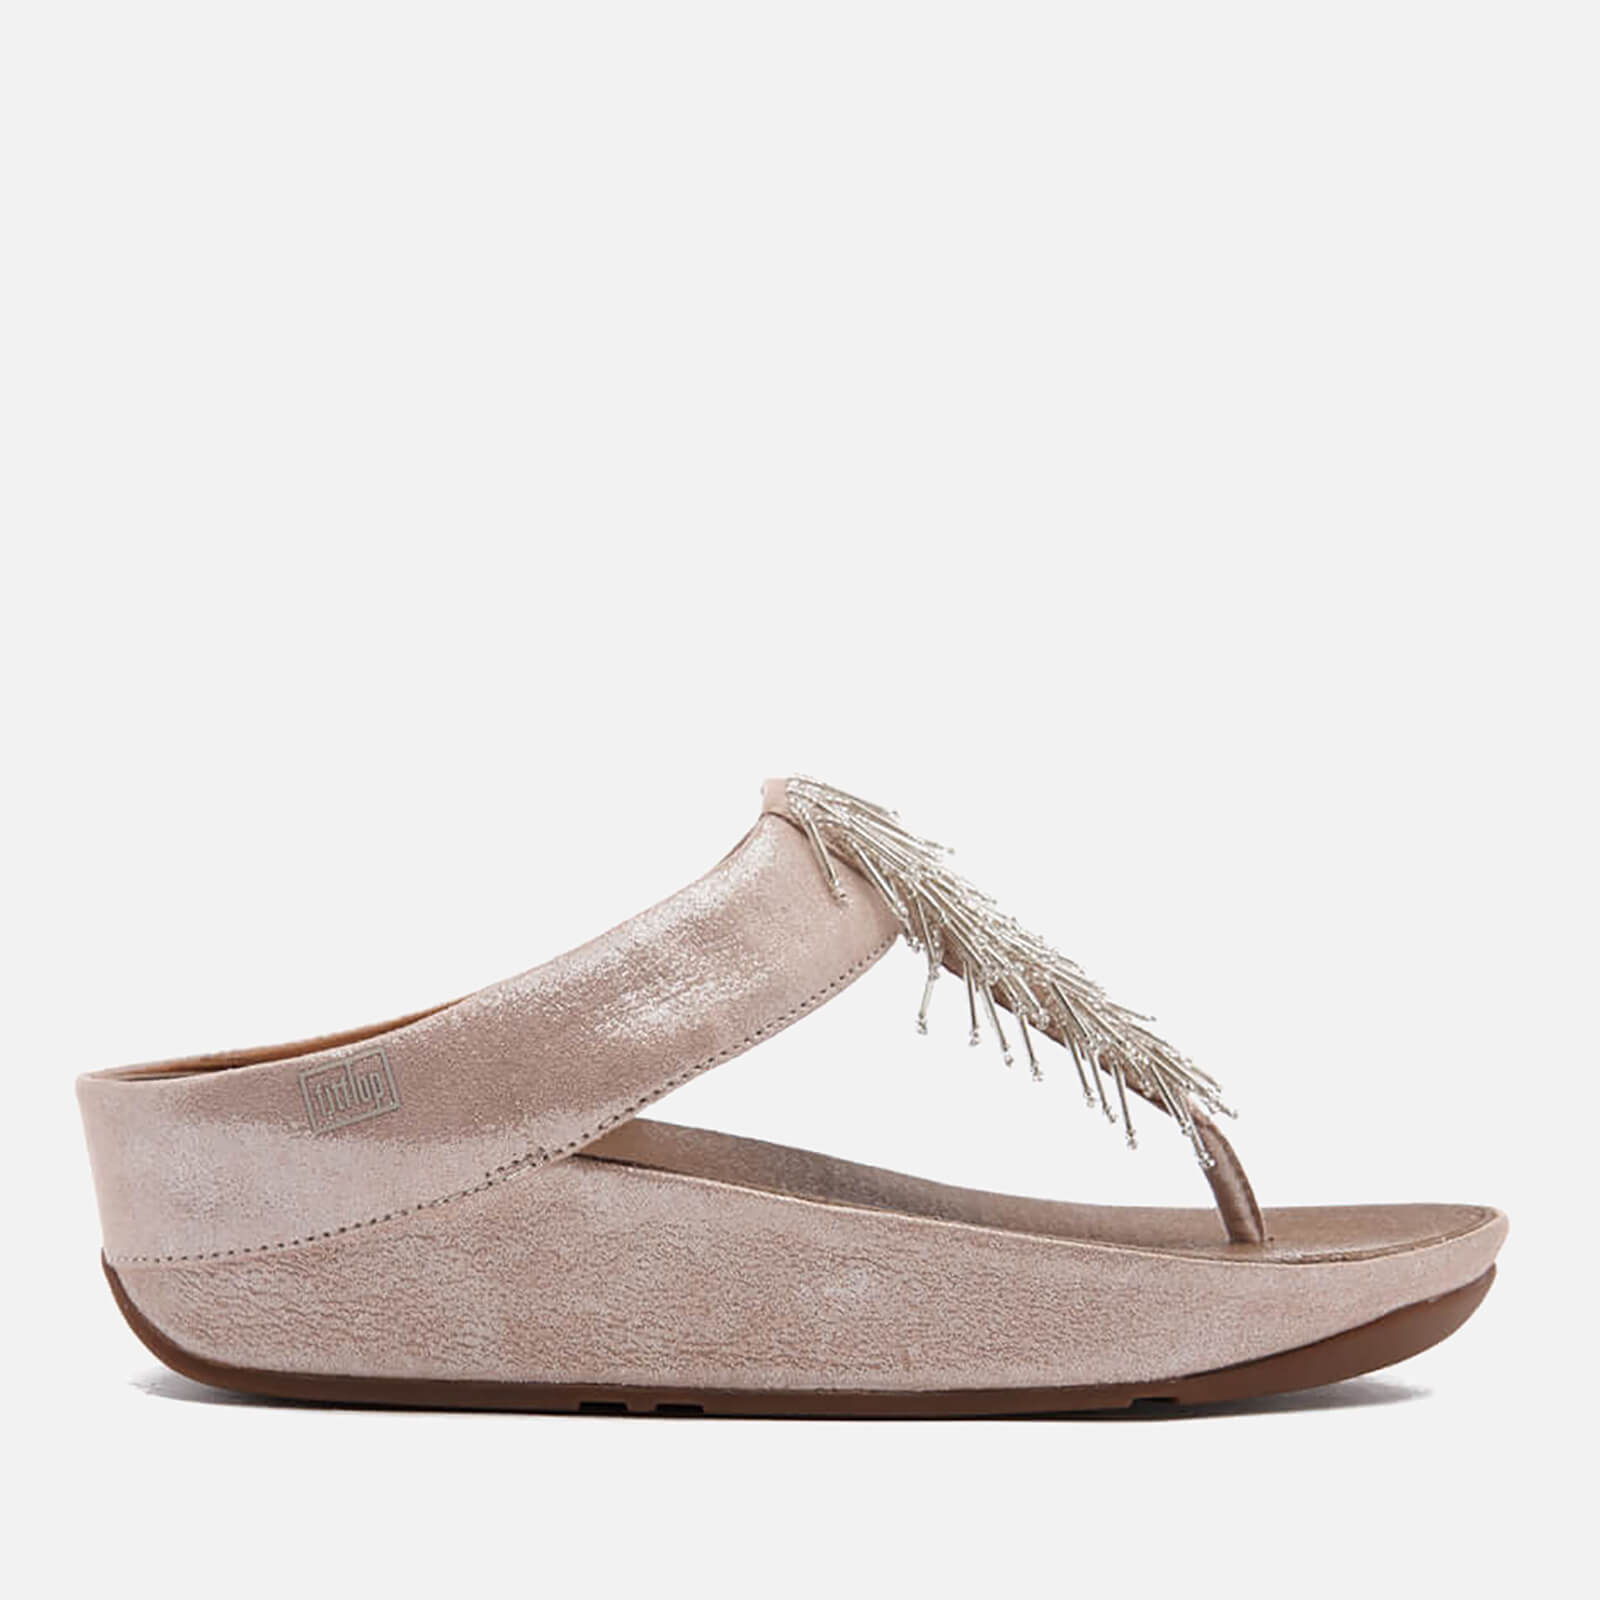 41448b9a1 FitFlop Women's Cha Cha Leather/Suede Tassel Toe-Post Sandals - Silver |  FREE UK Delivery | Allsole